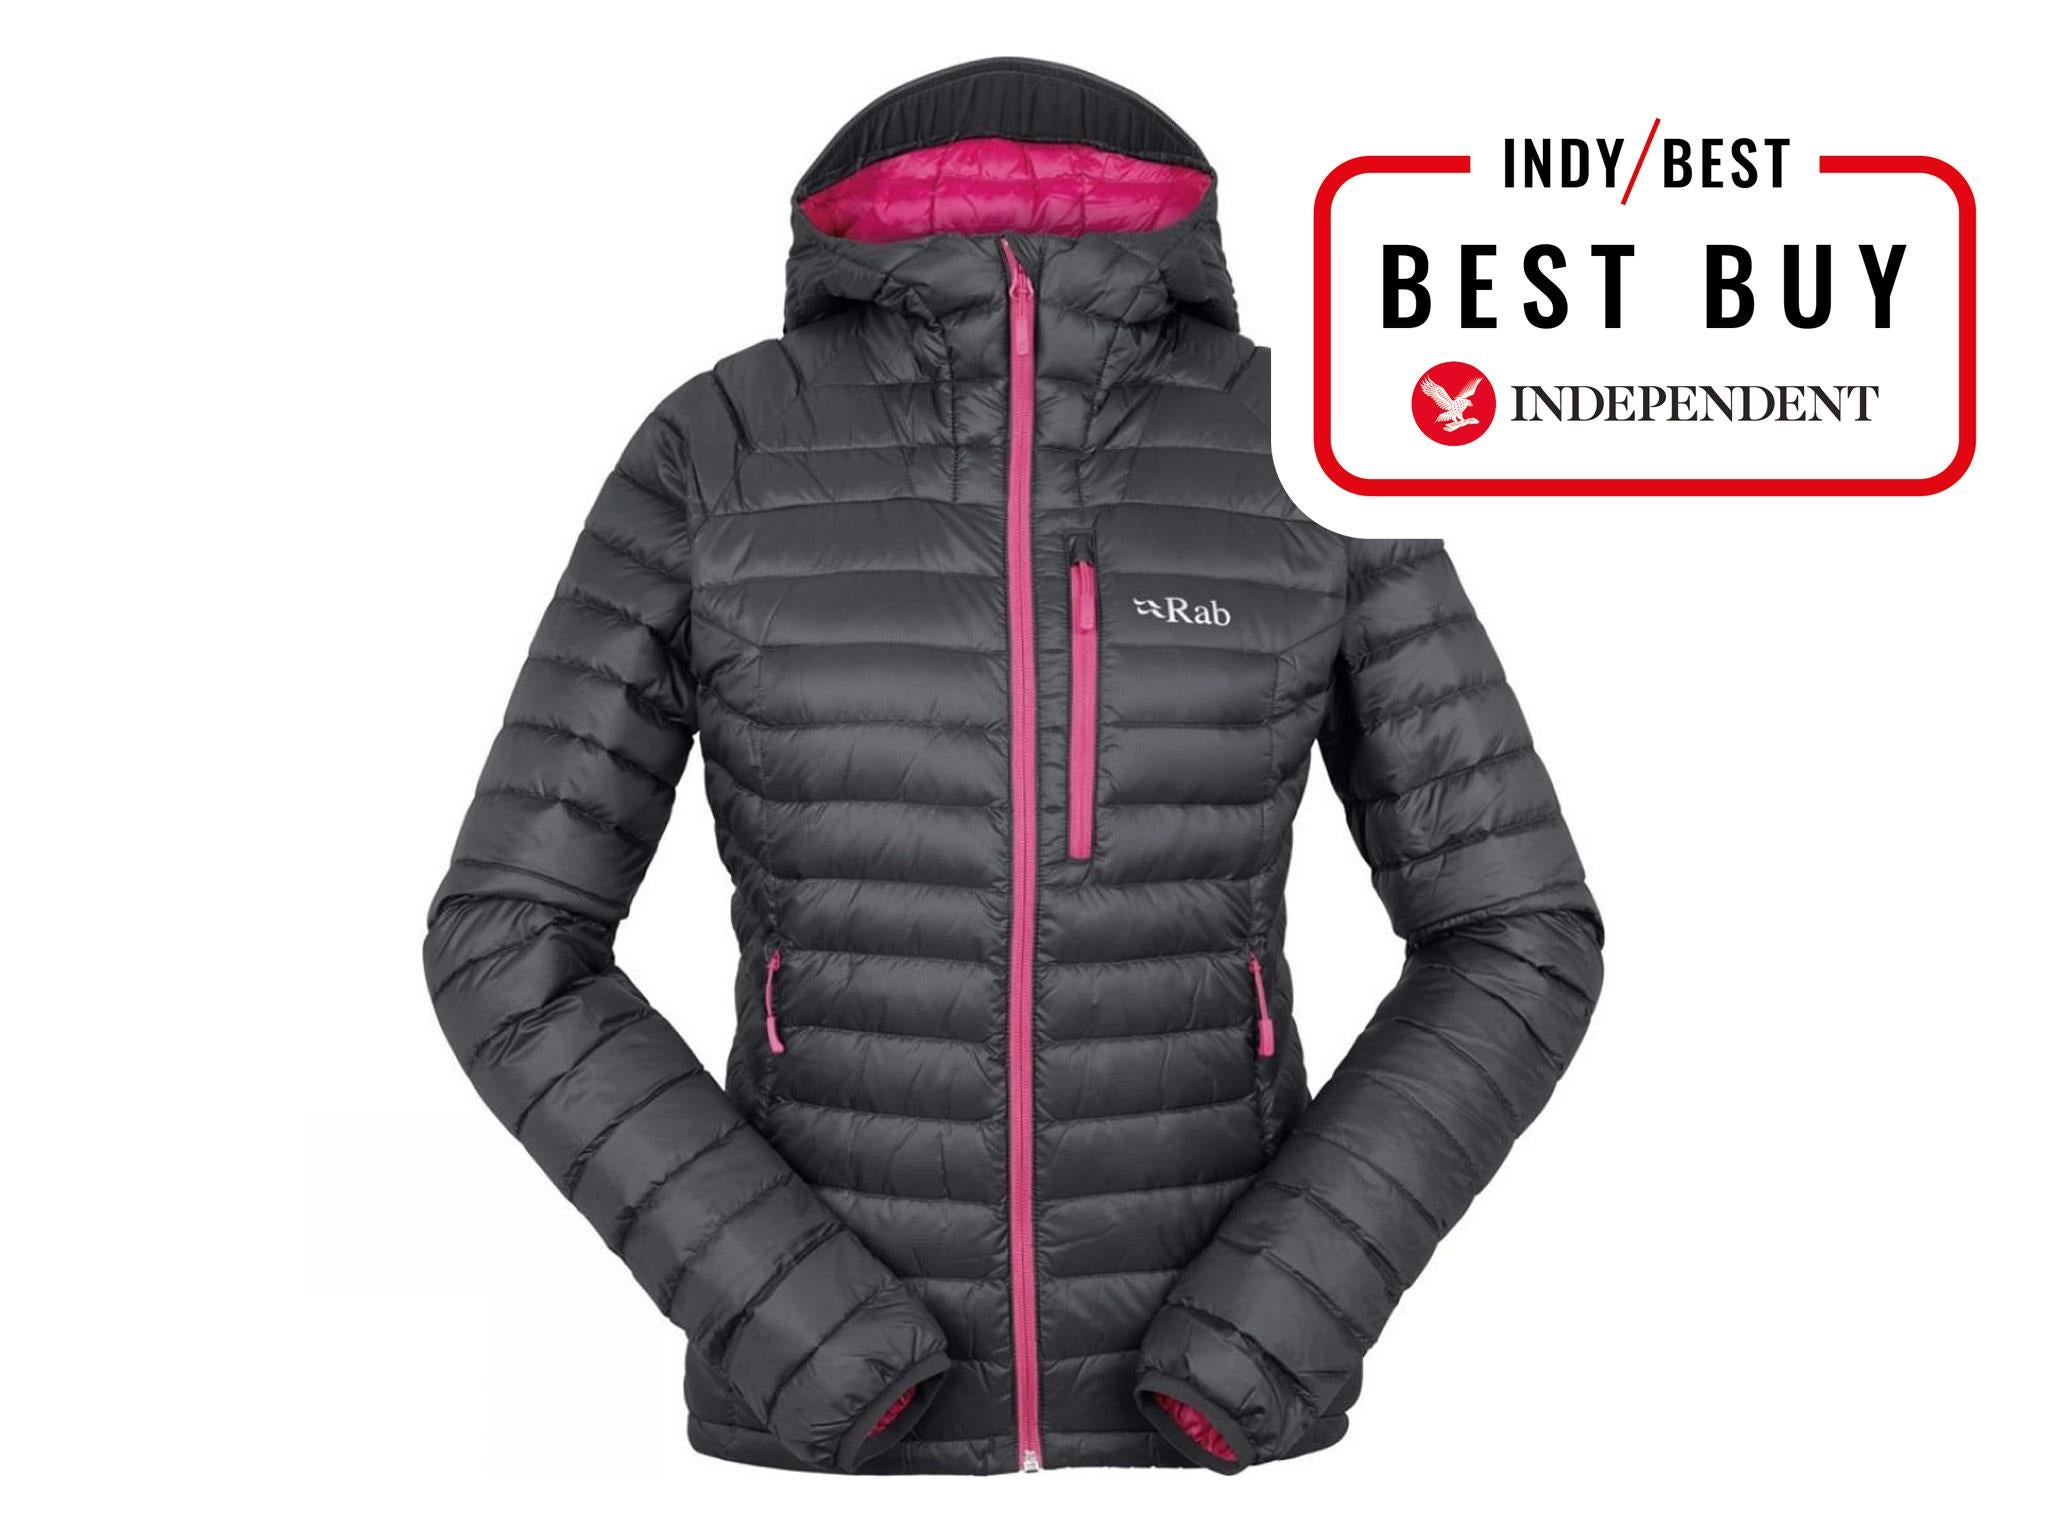 11 Best Insulated Jackets The Independent